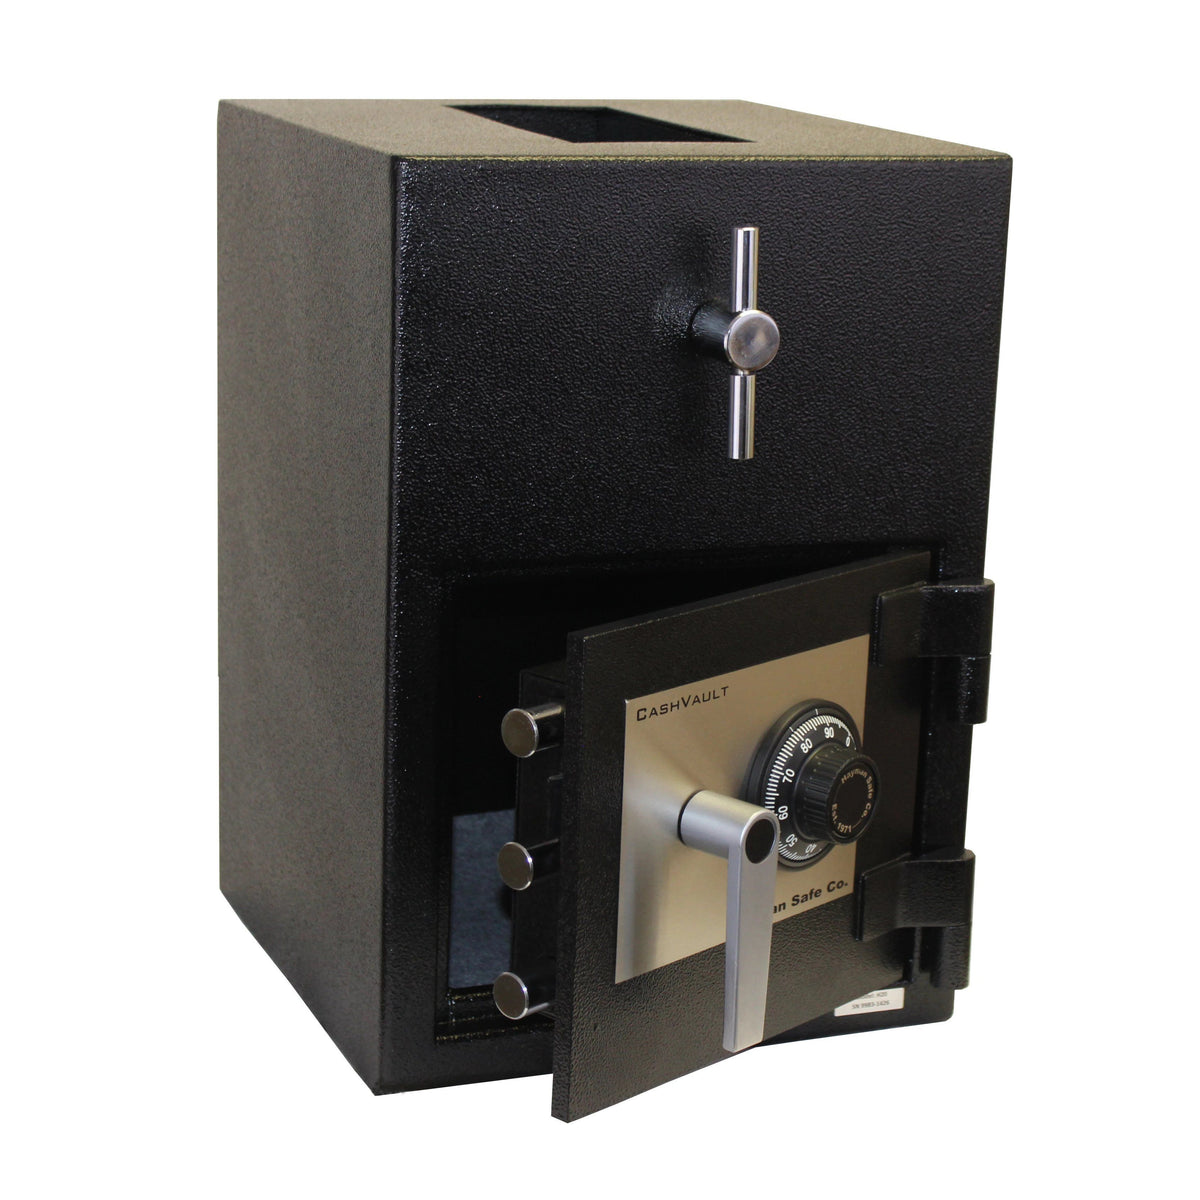 Hayman CV-H20-C Top Loading Depository Safe